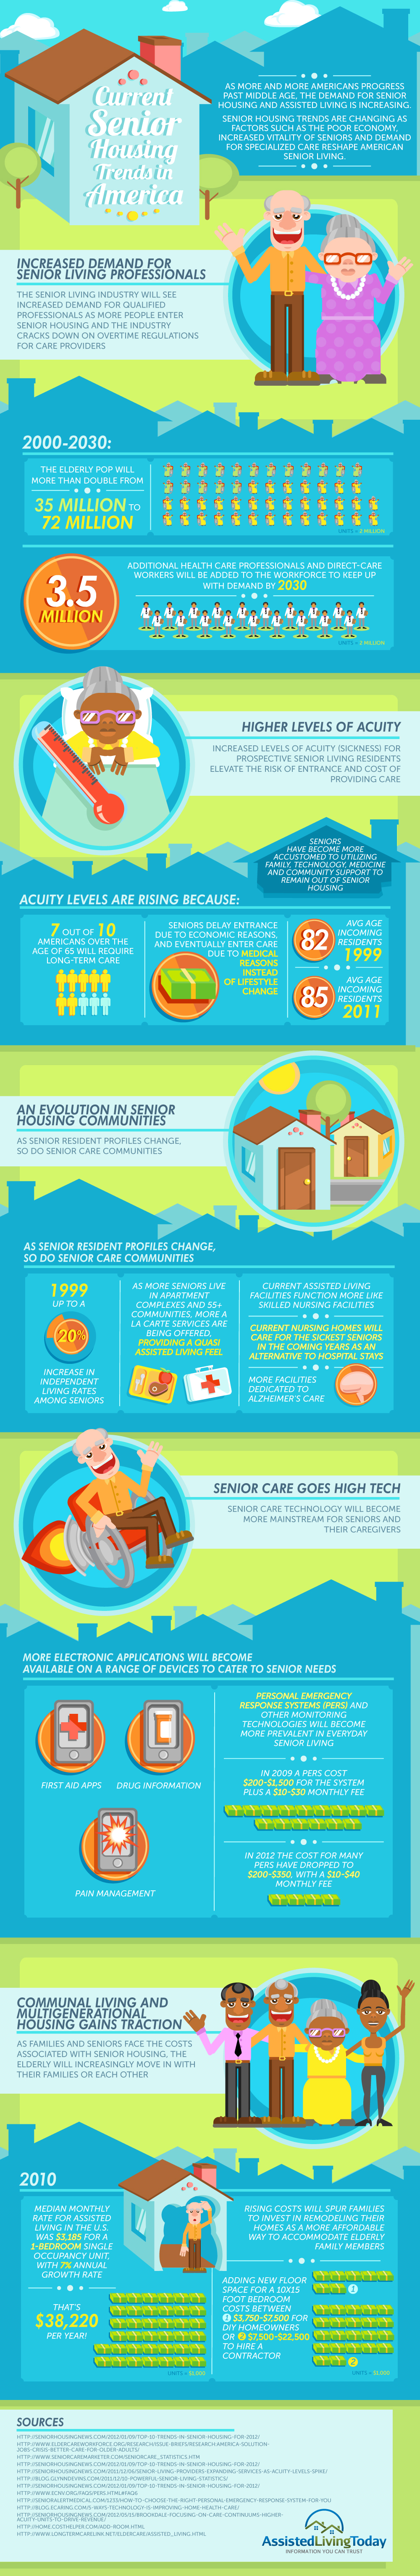 Senior Housing Trends Infographic